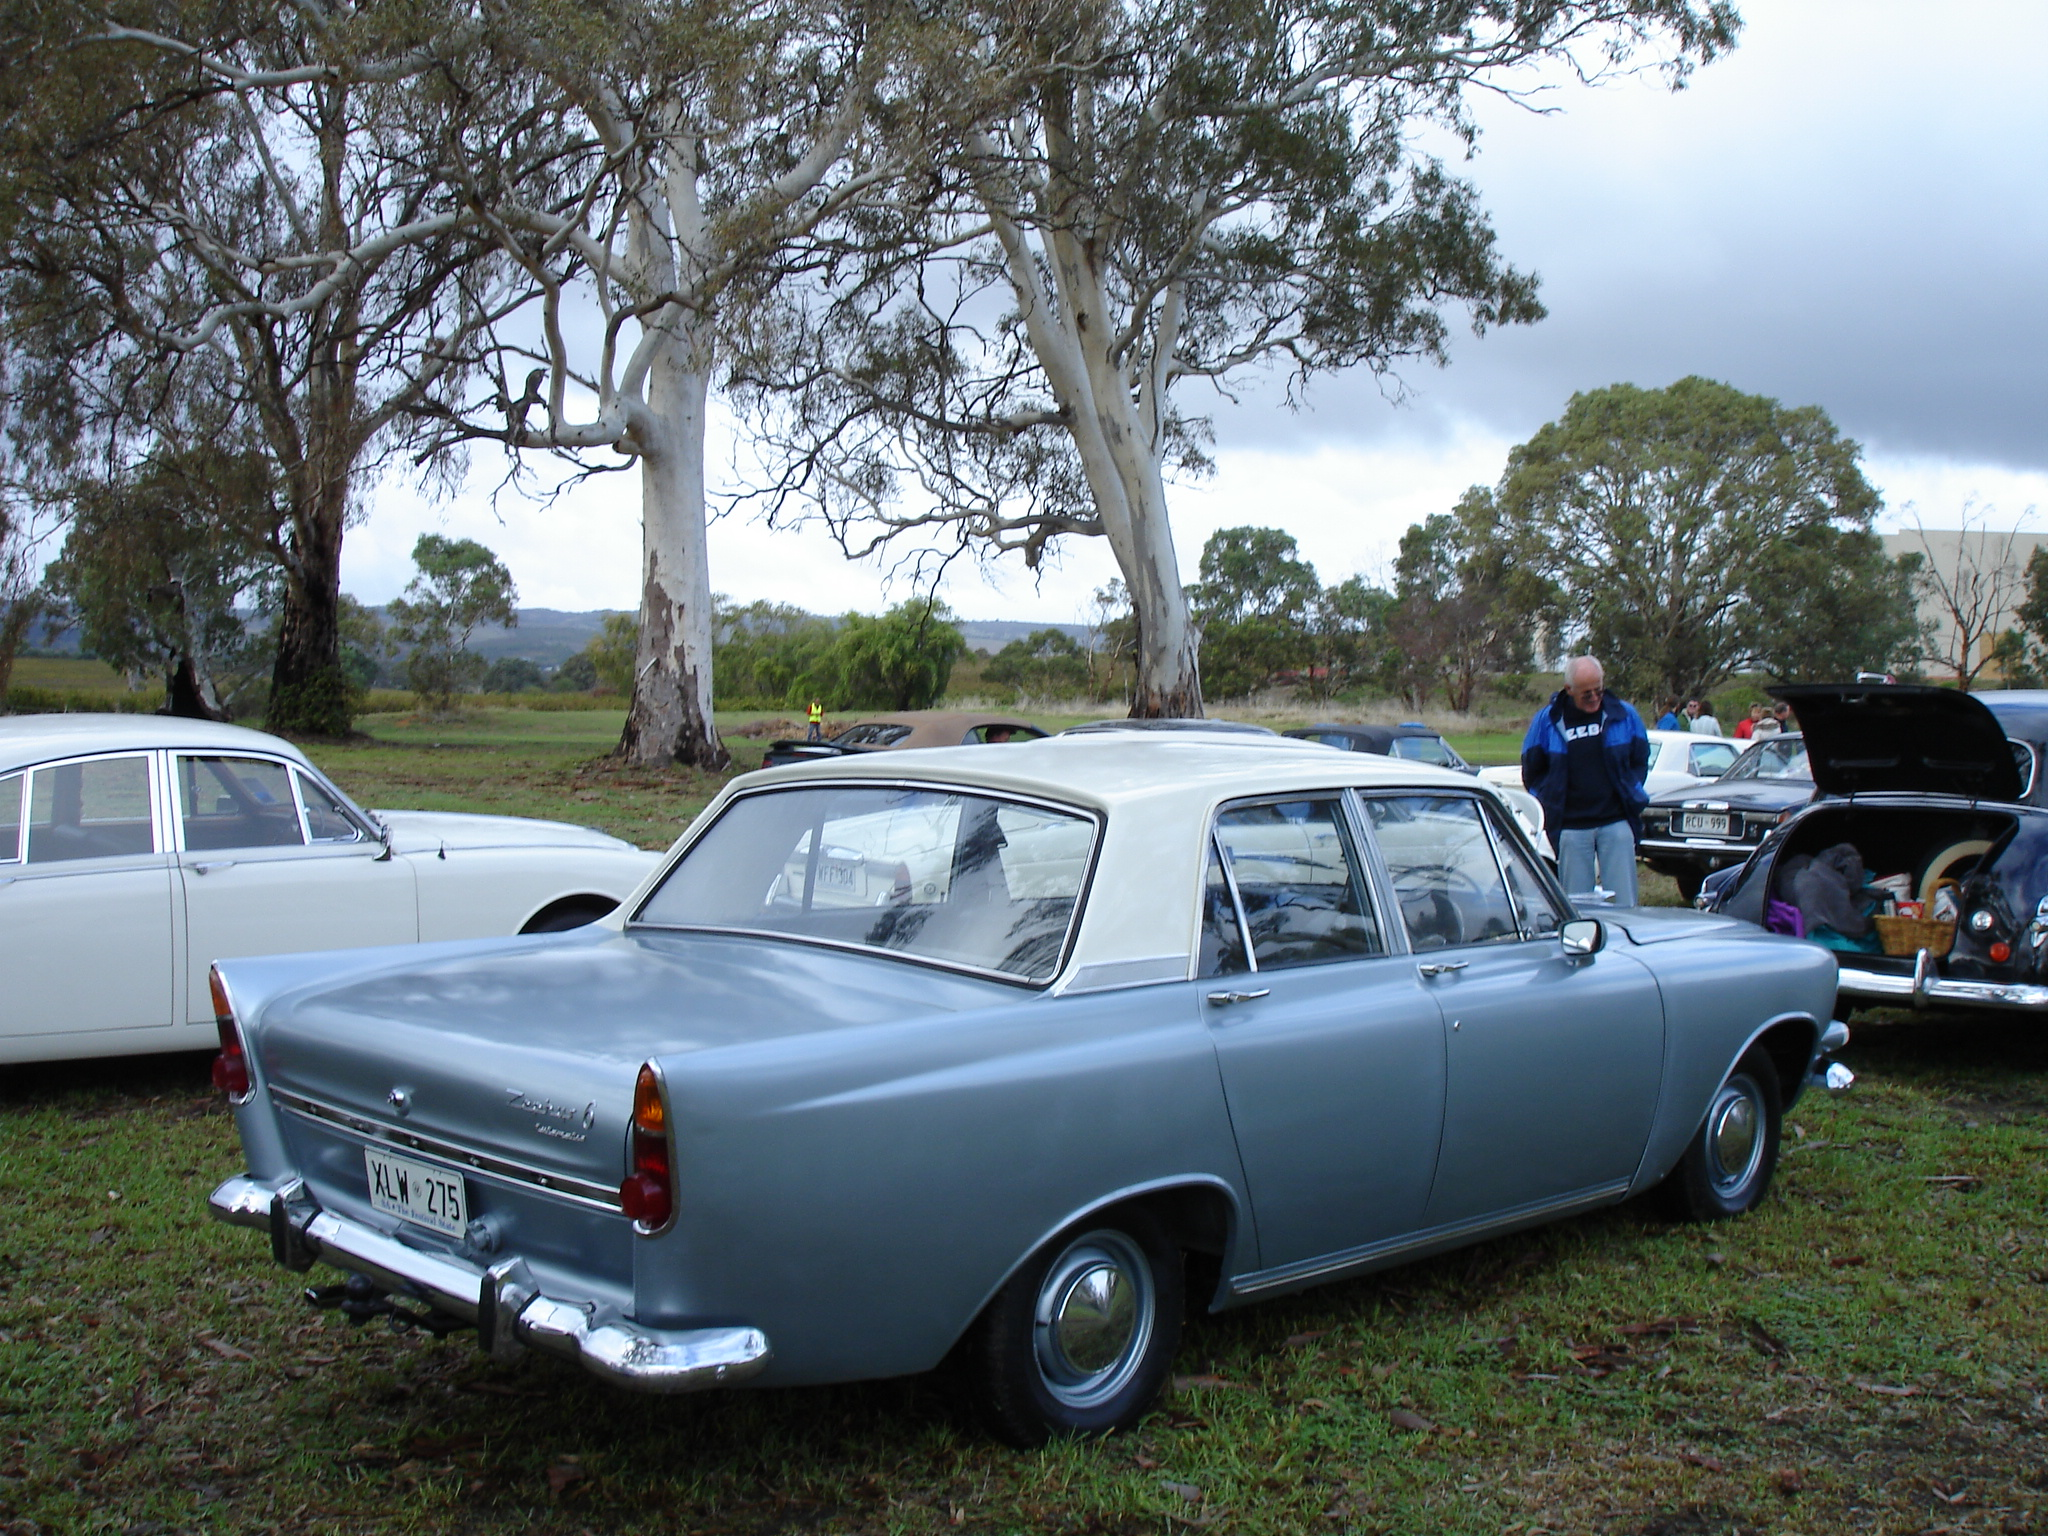 SIDE VIEW - Ford Zephyr and